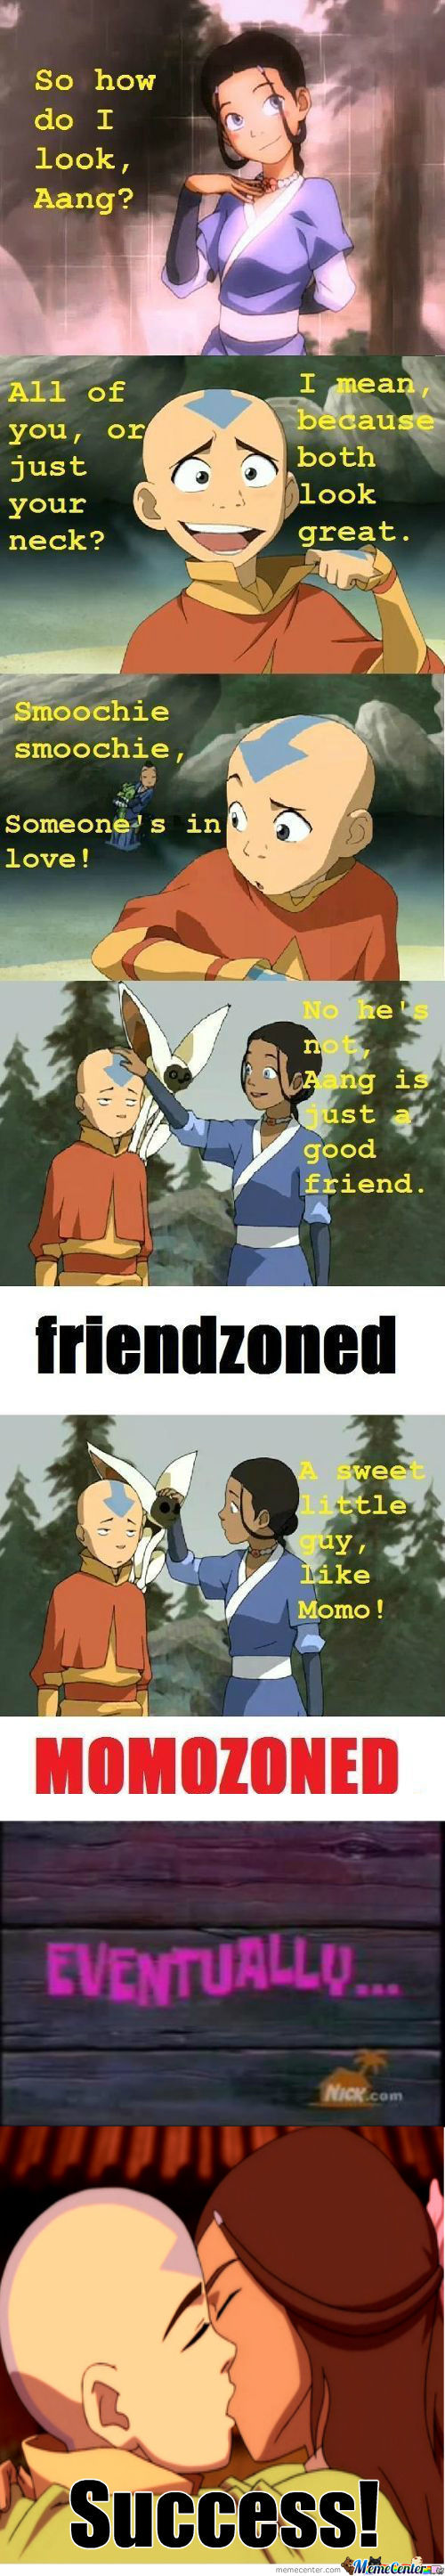 [RMX] I Feel U Brother In Friendzone